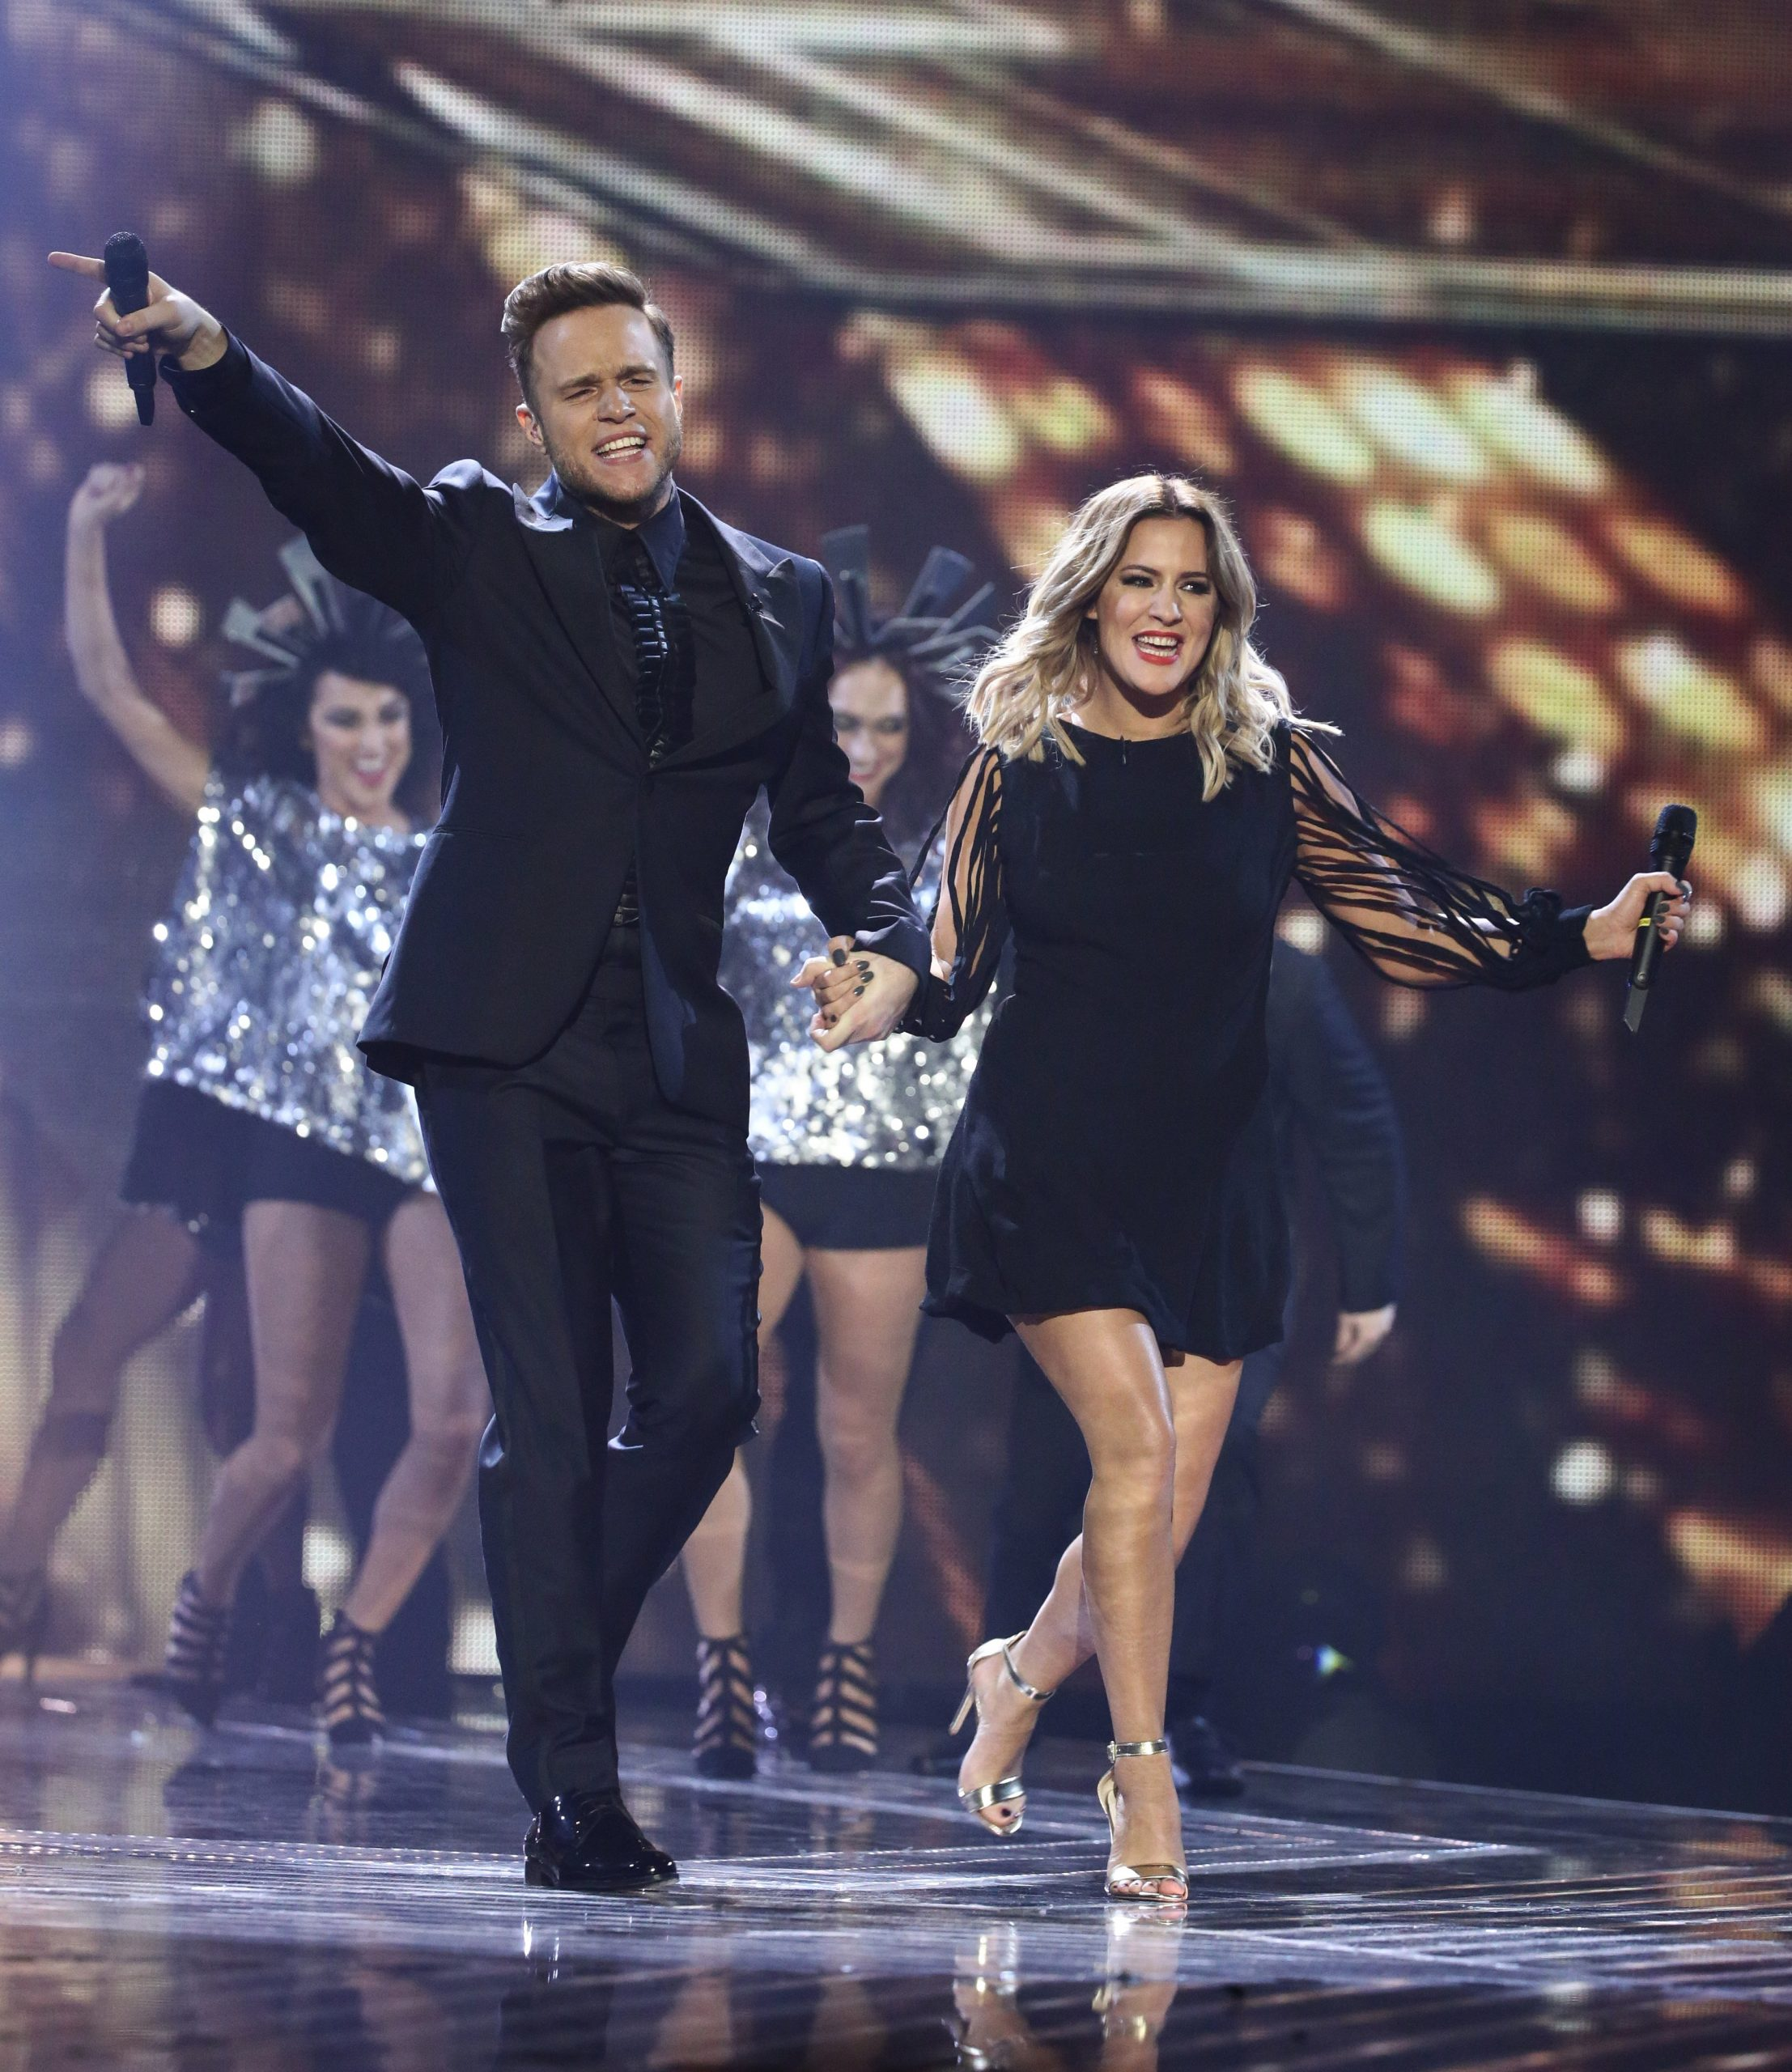 The X Factor Series Finals, London, United Kingdom - 13 December 2015 Pictured: Olly Murs,Caroline Flack,Olly Murs Caroline Flack Ref: SPL1195720 131215 NON-EXCLUSIVE Picture by: SplashNews.com Splash News and Pictures Los Angeles: 310-821-2666 New York: 212-619-2666 London: +44 (0)20 7644 7656 Berlin: +49 175 3764 166 photodesk@splashnews.com World Rights